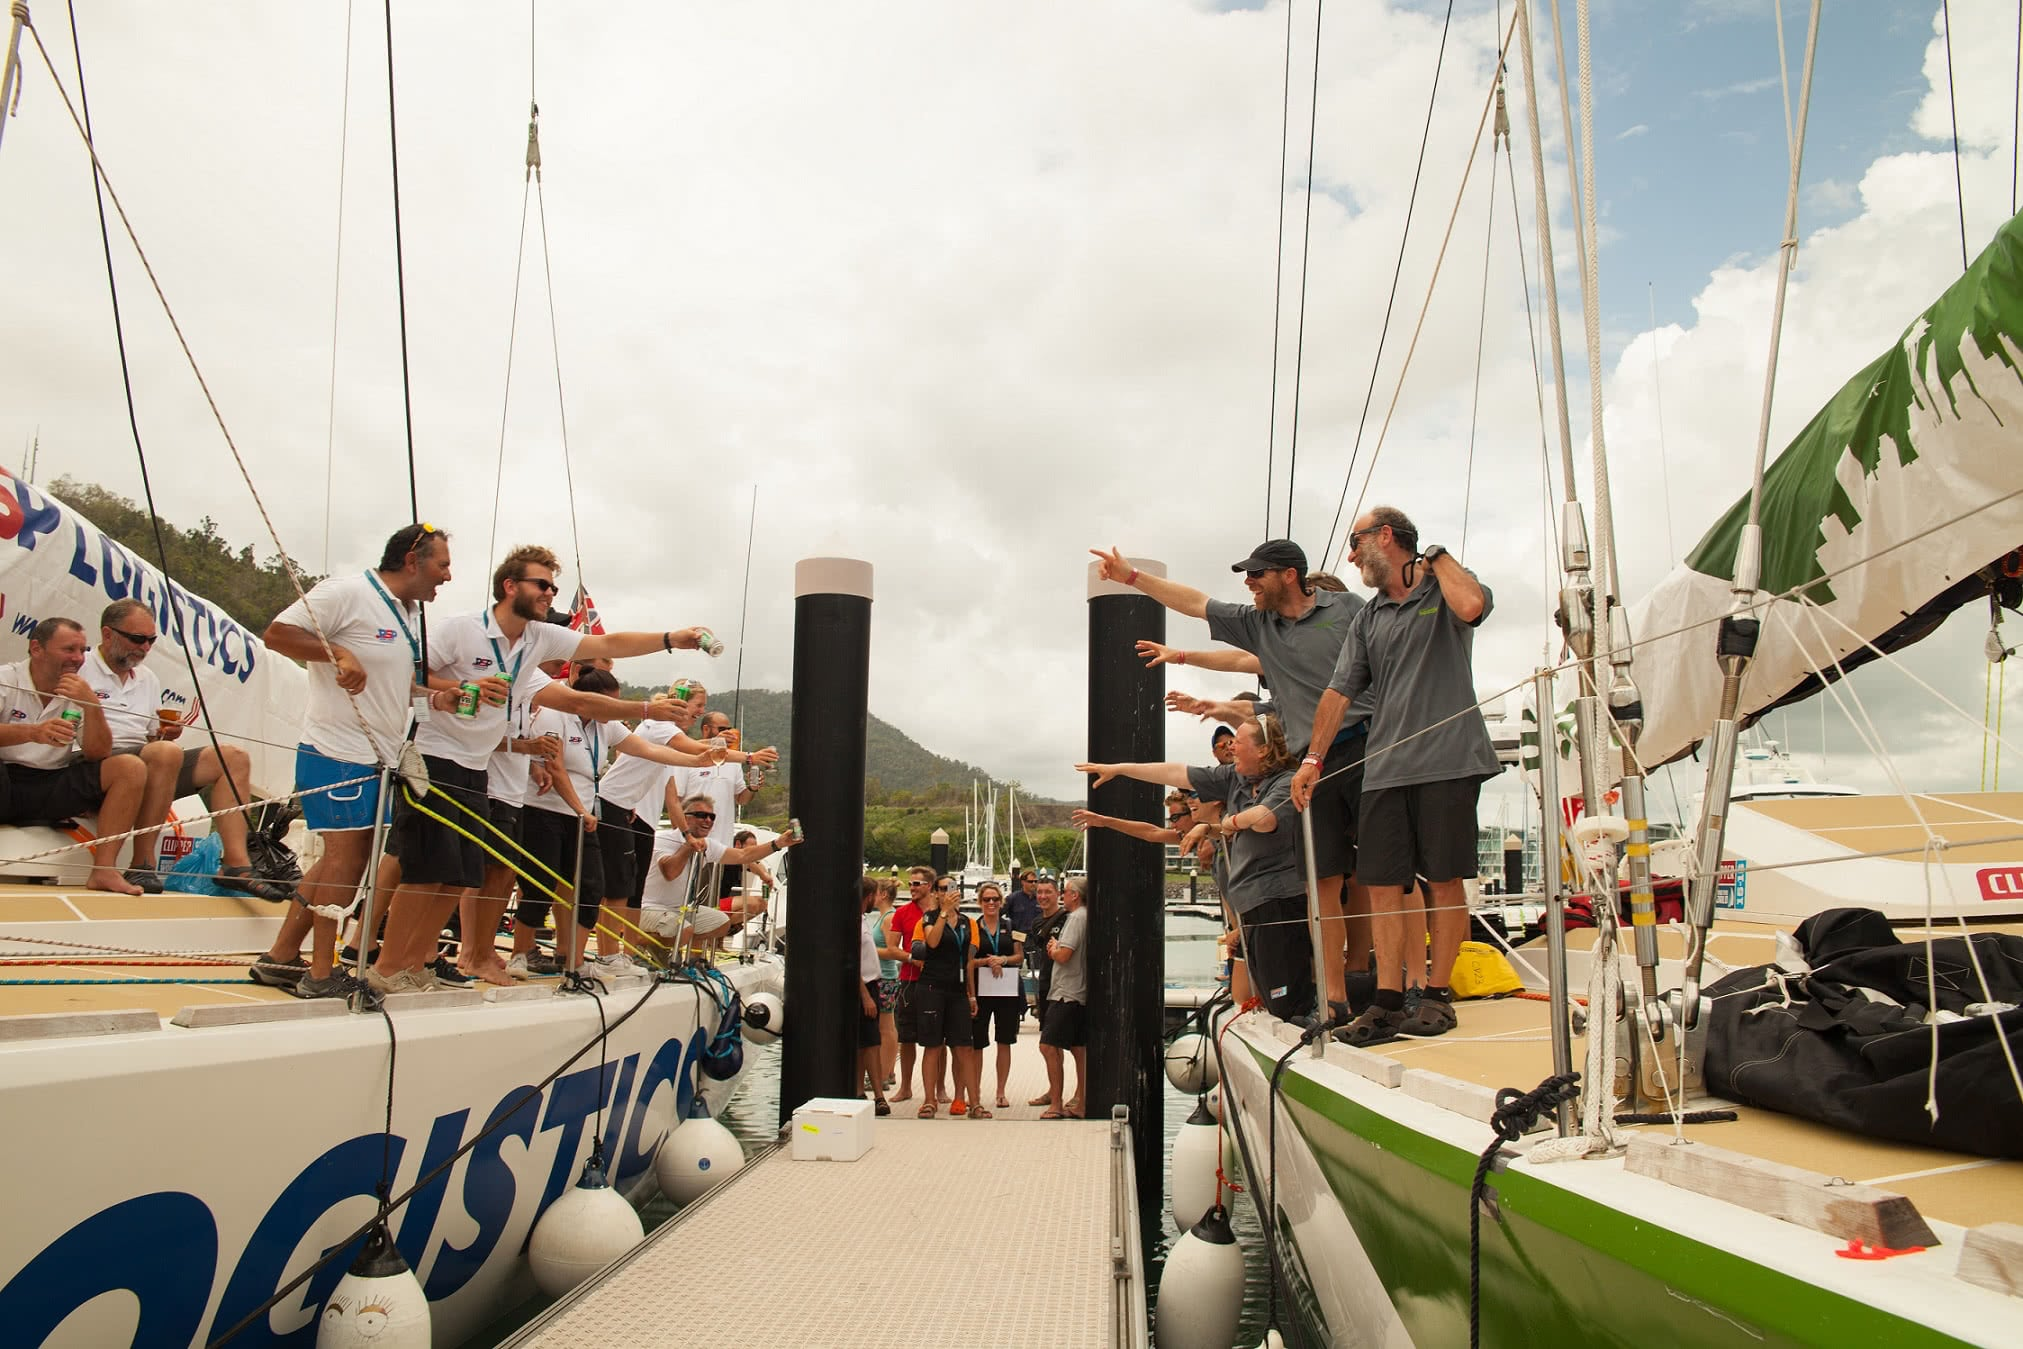 Just 80 days to go until the Whitsunday Clipper Race Carnival